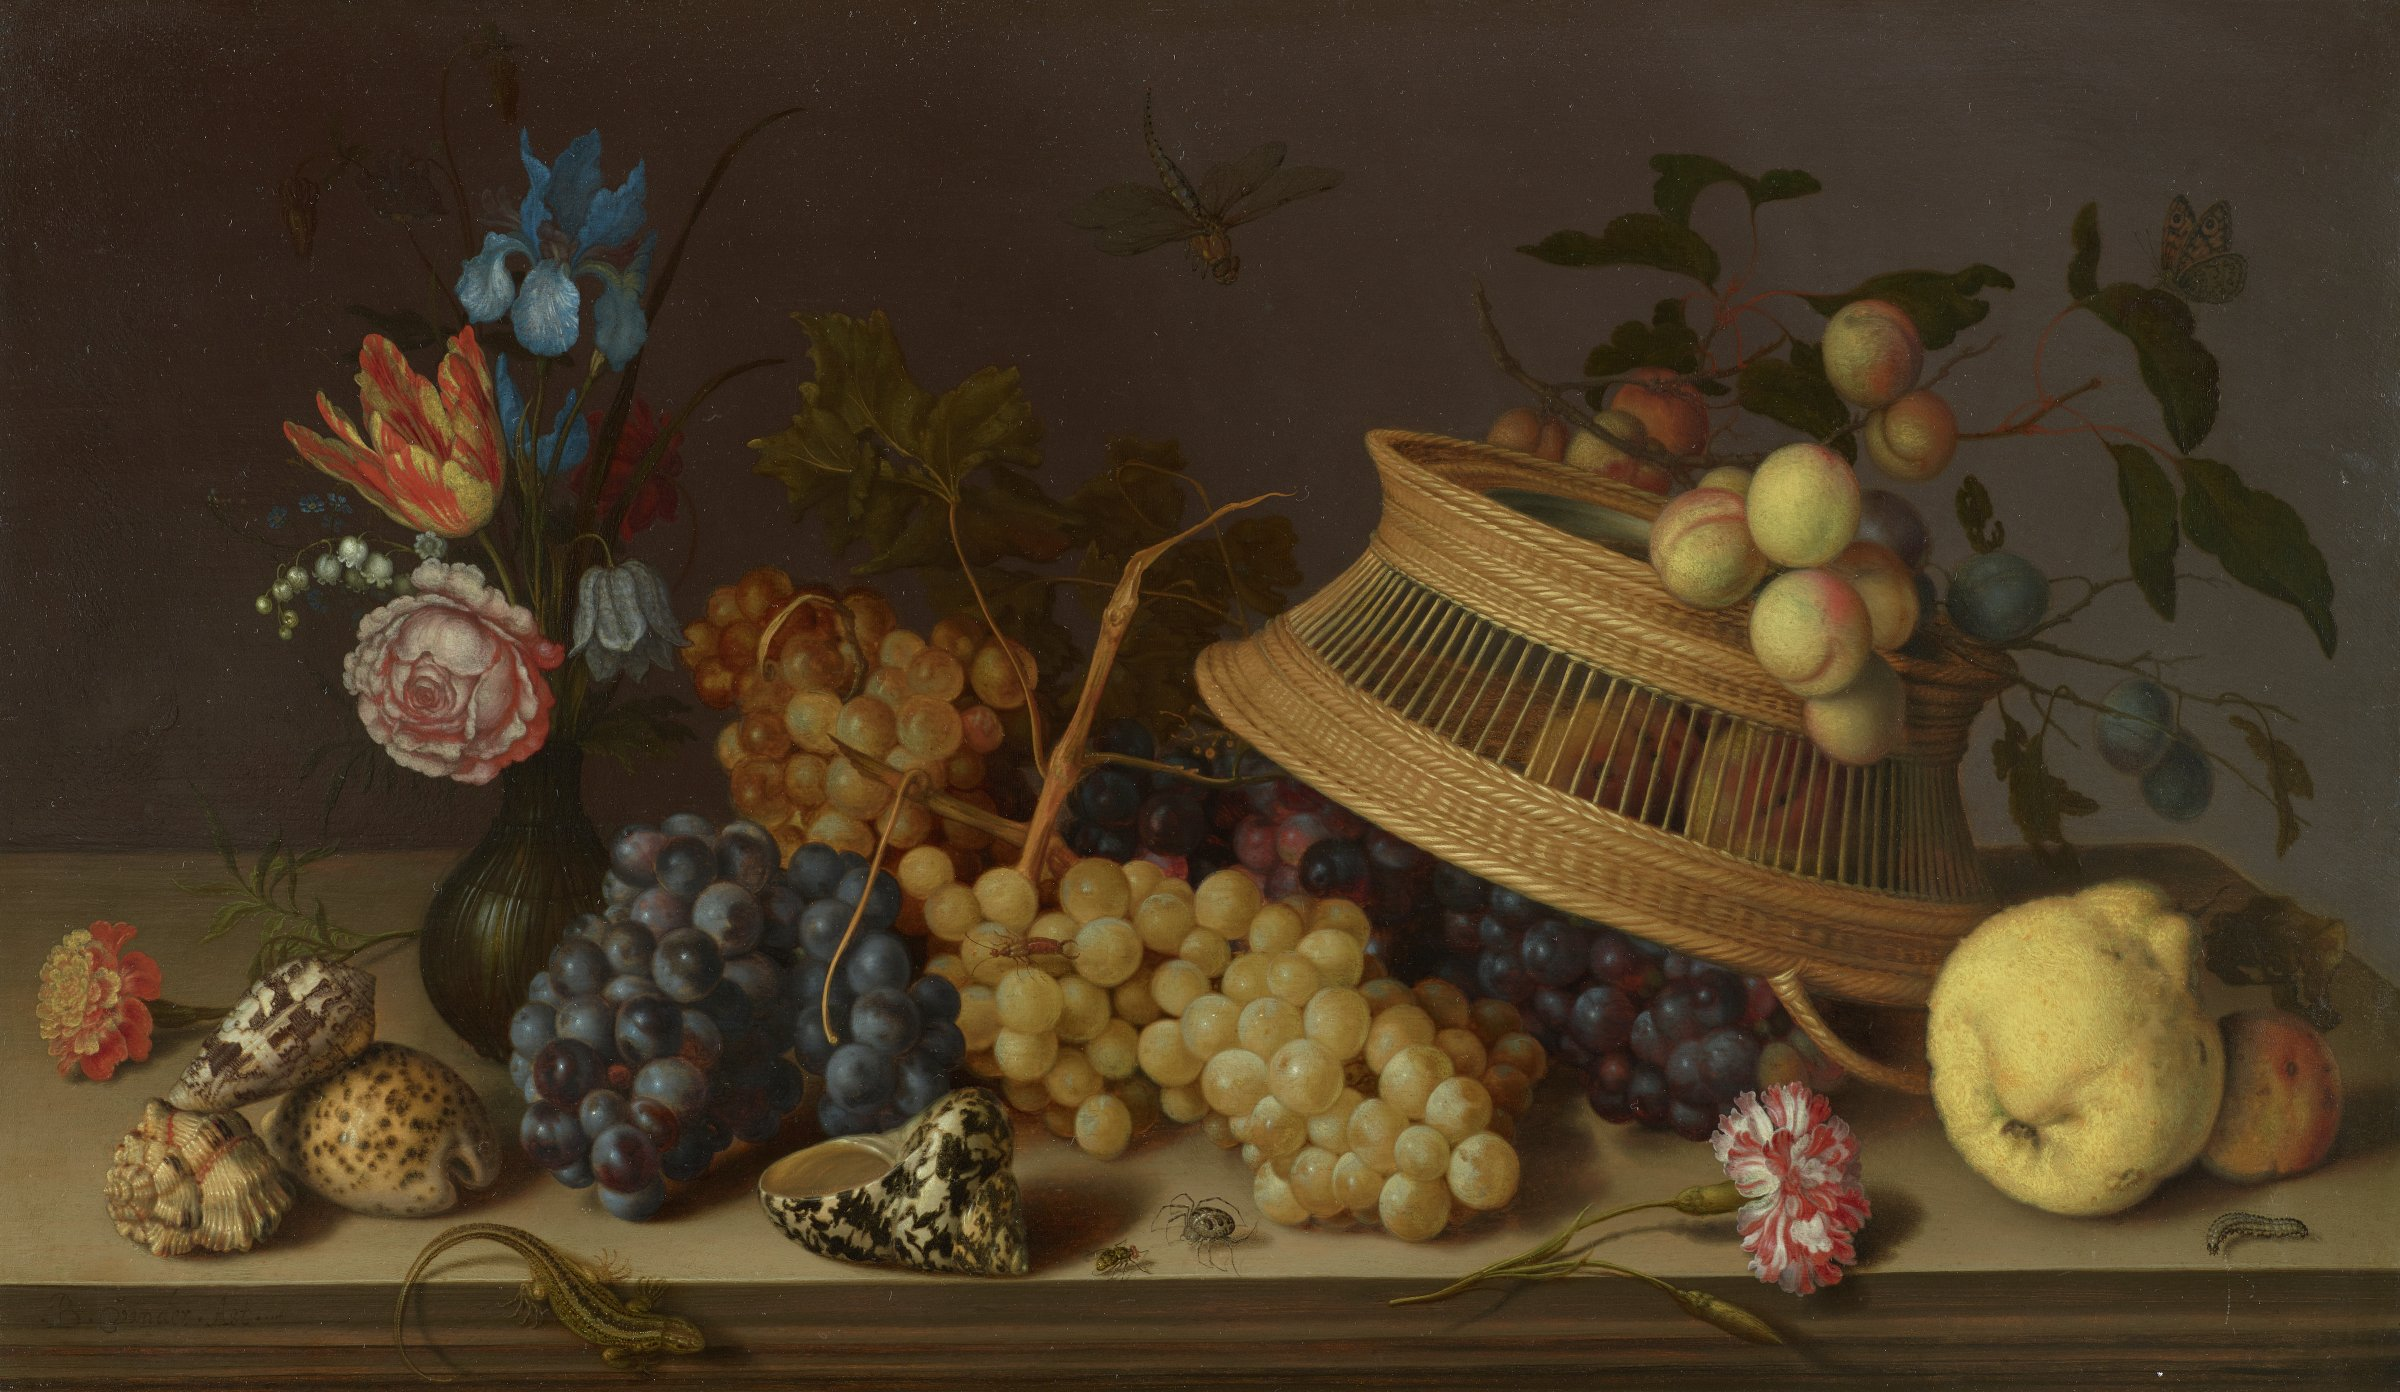 Still Life of Flowers, Fruit, Shells, and Insects, Balthasar van der Ast, oil on panel